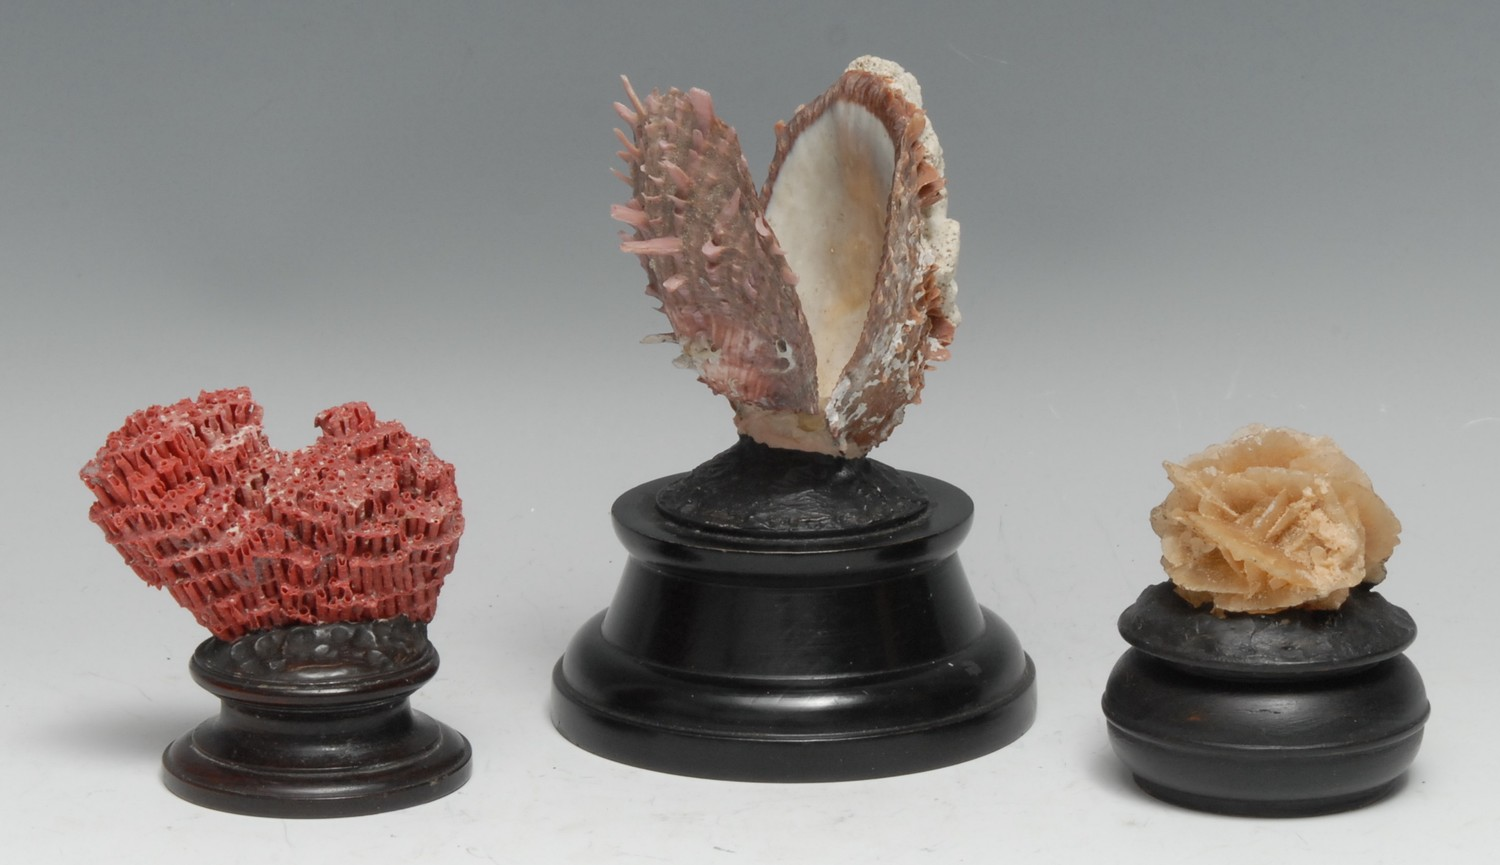 Natural History - a spondylus shell, mounted for display, 13.5cm high overall; a red coral specimen,